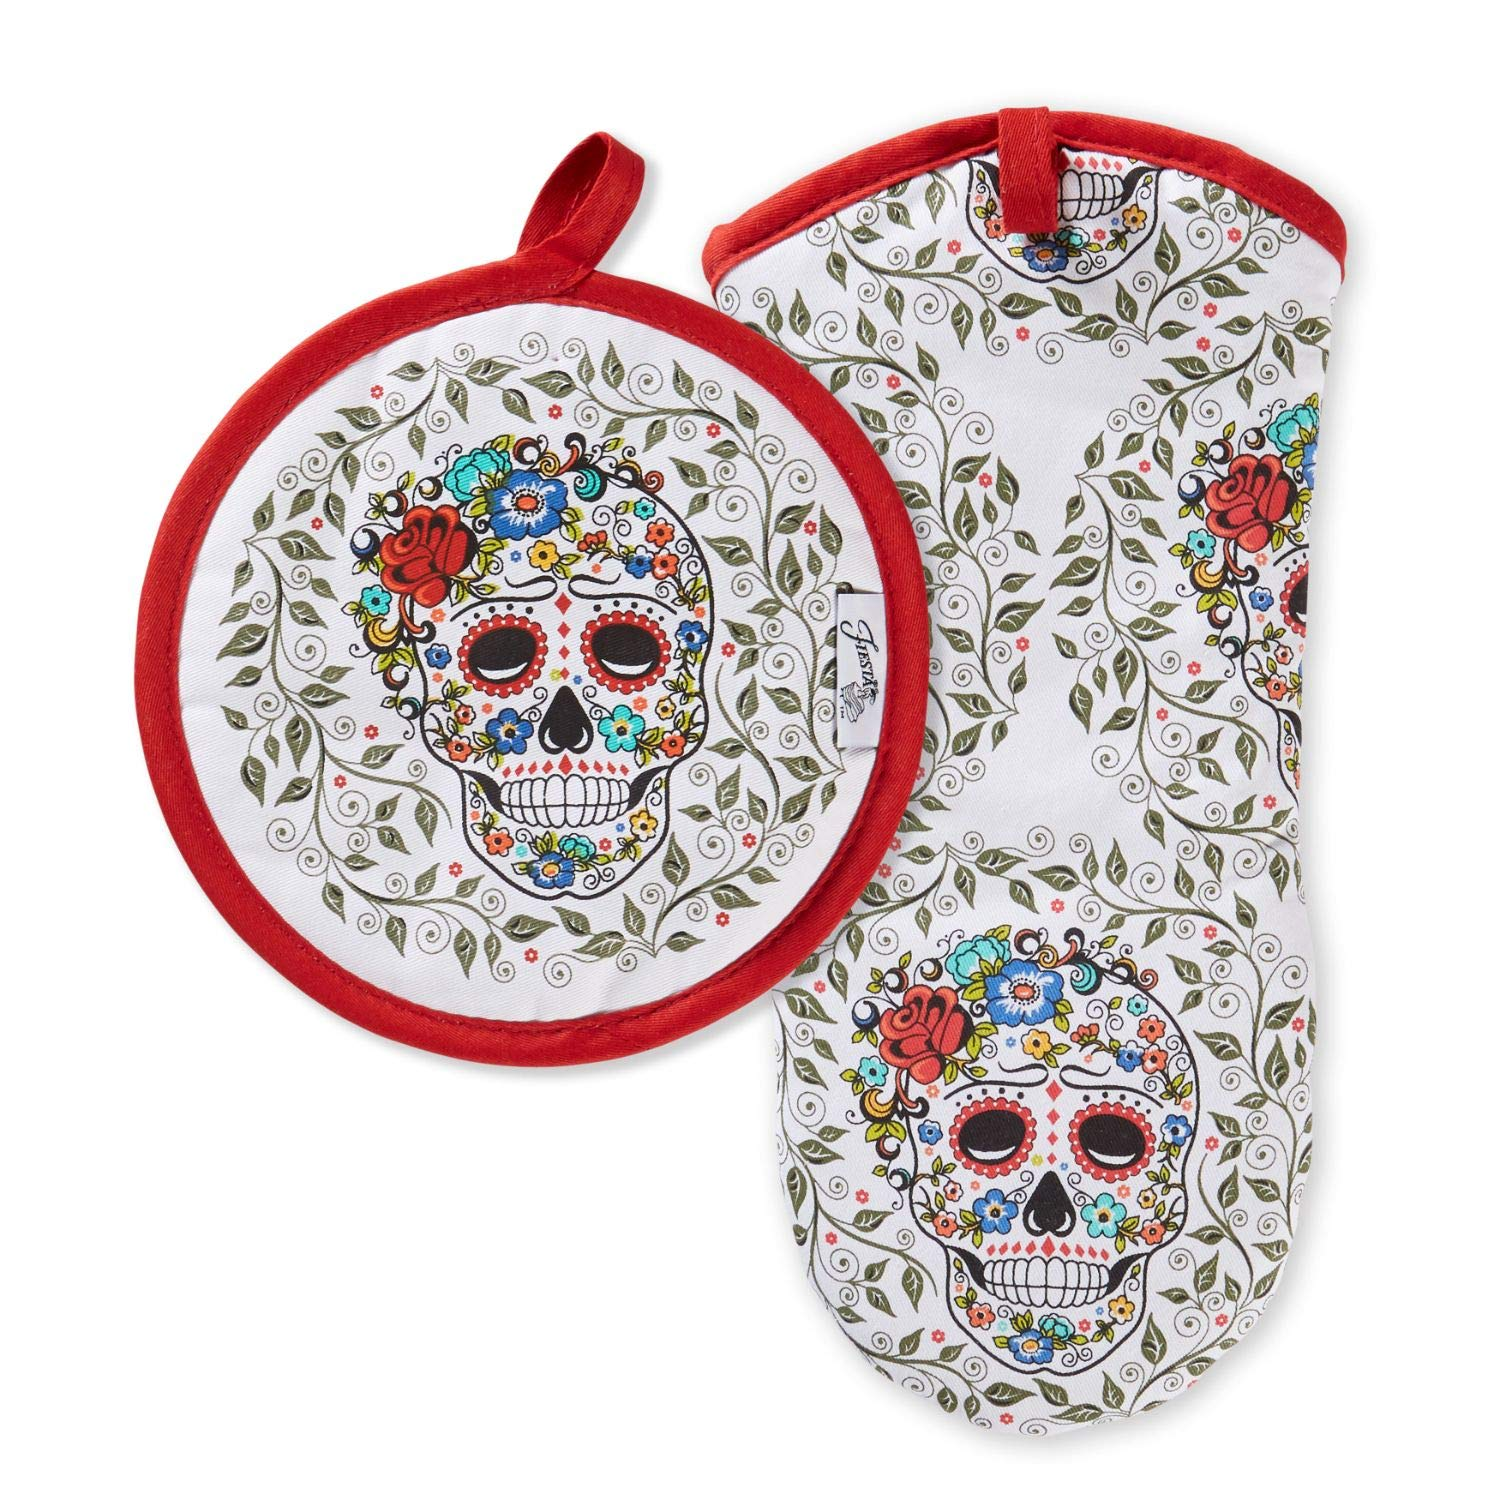 "Fiesta Skull & Vine Oven Mitt & Pot Holder, 6.5""x13"" 8""x8"", Multi"